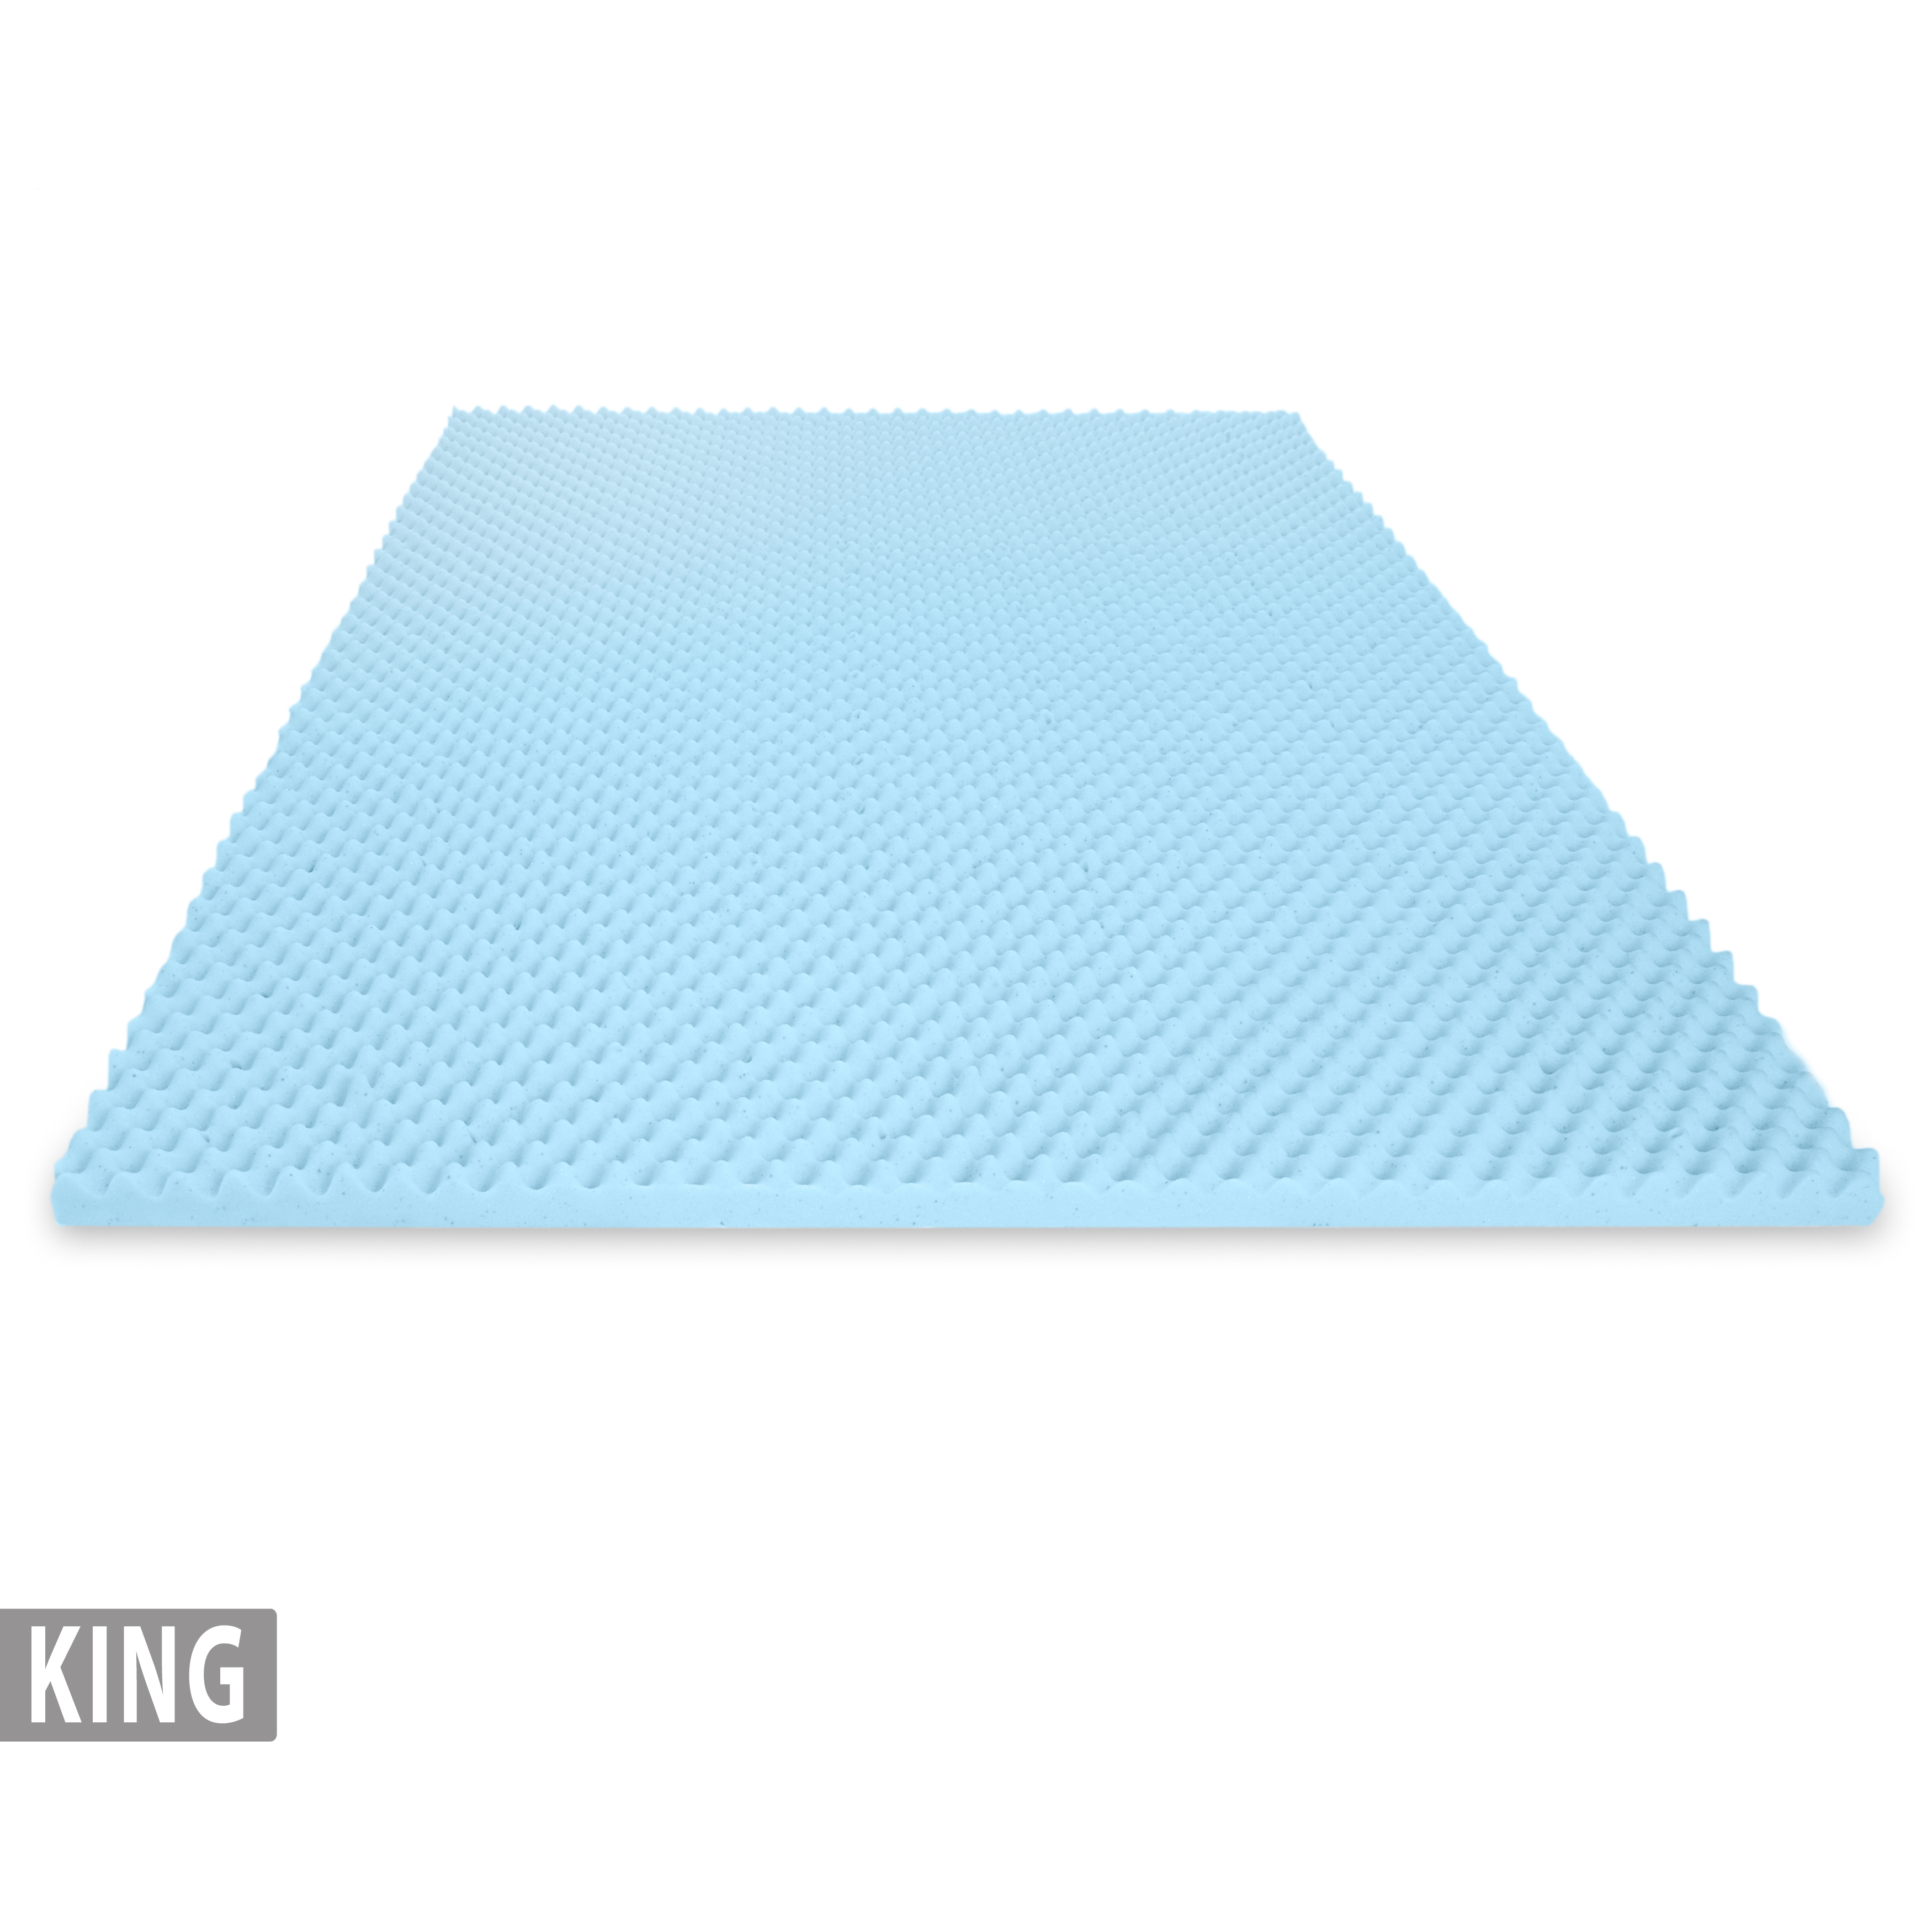 King Bed Egg Crate